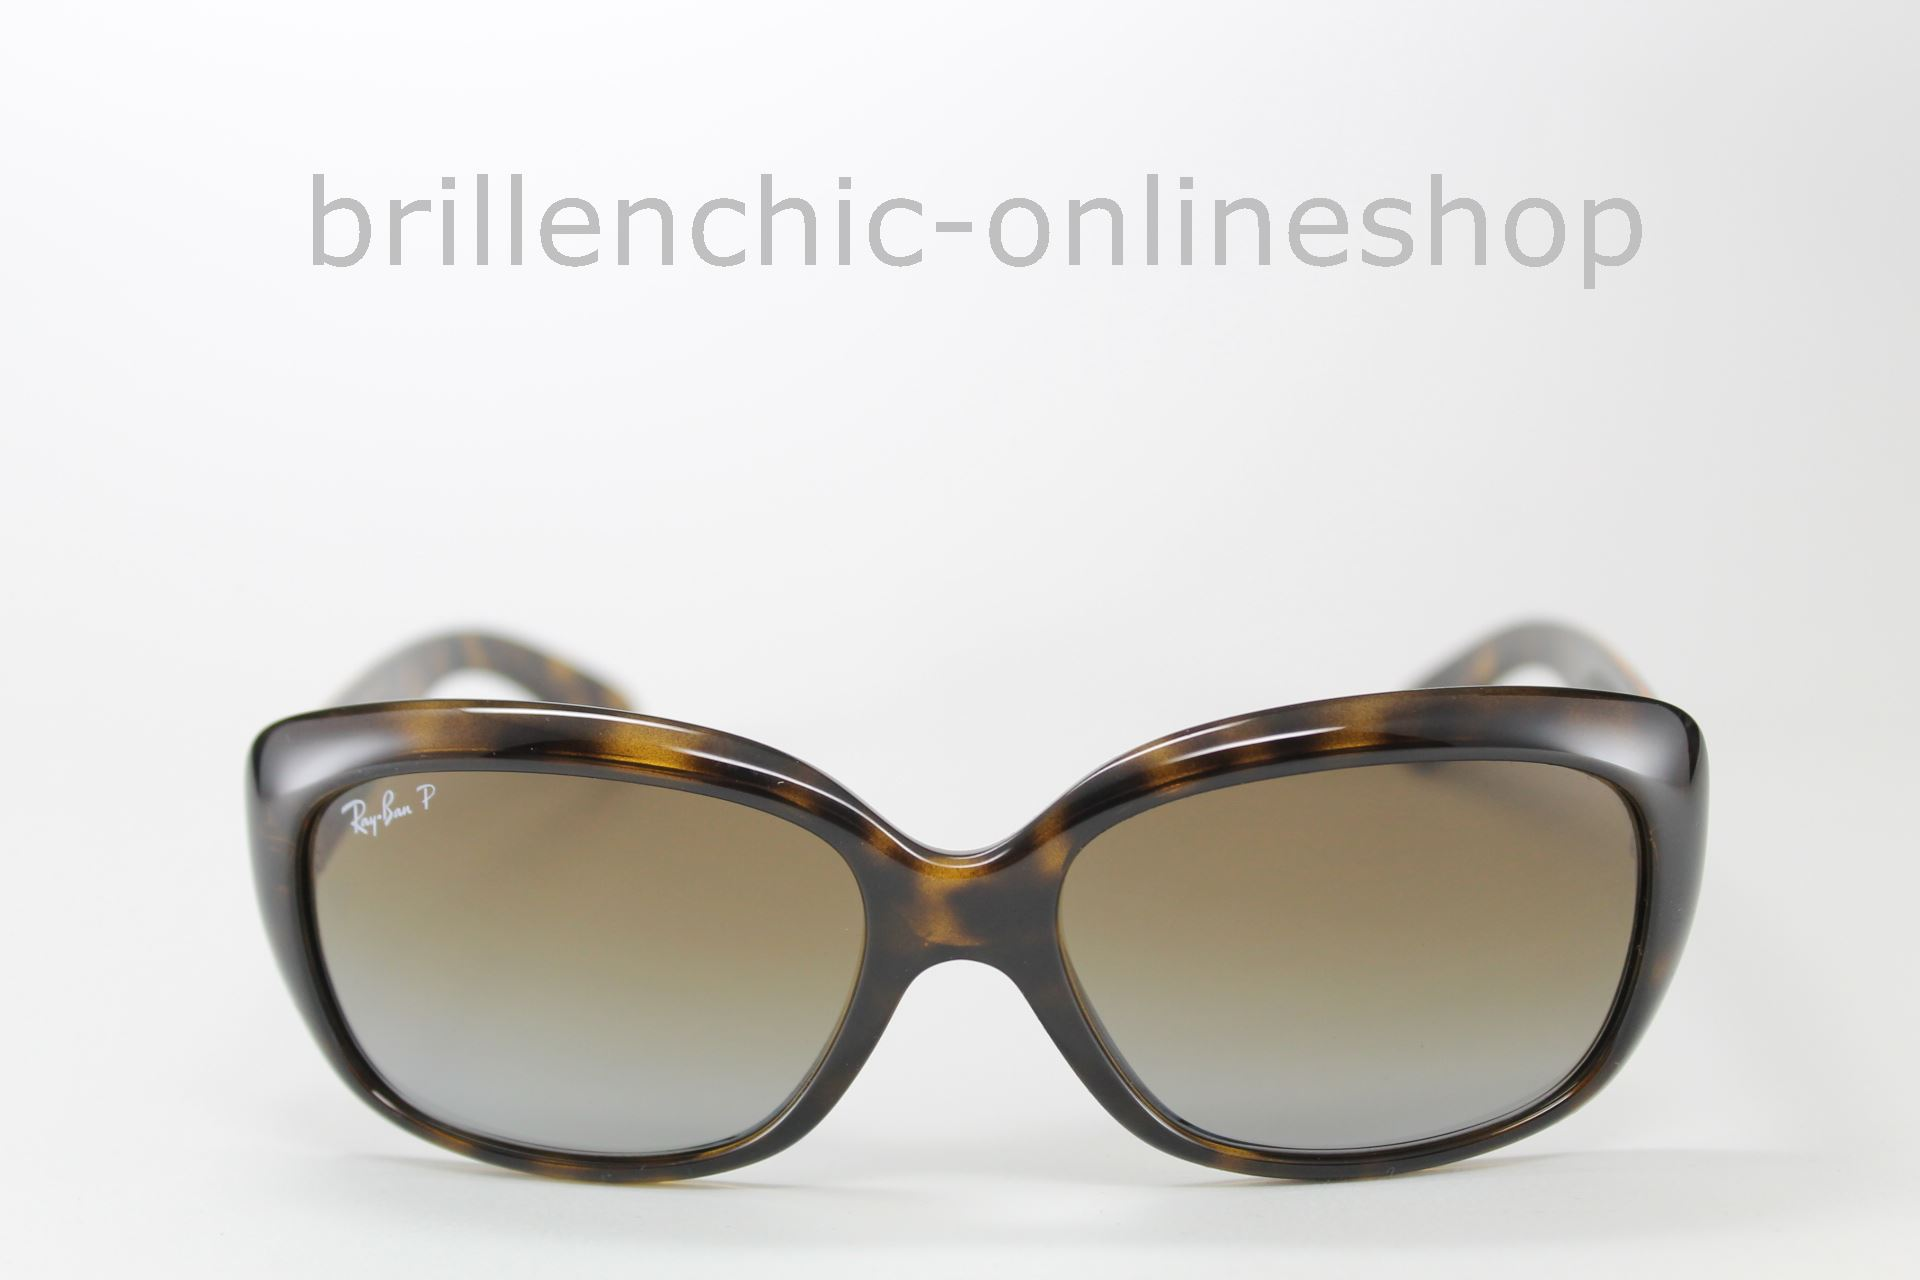 9280b9ad8b0 Brillenchic-onlineshop in Berlin - Ray Ban JACKIE OHH RB 4101 710 T5 ...